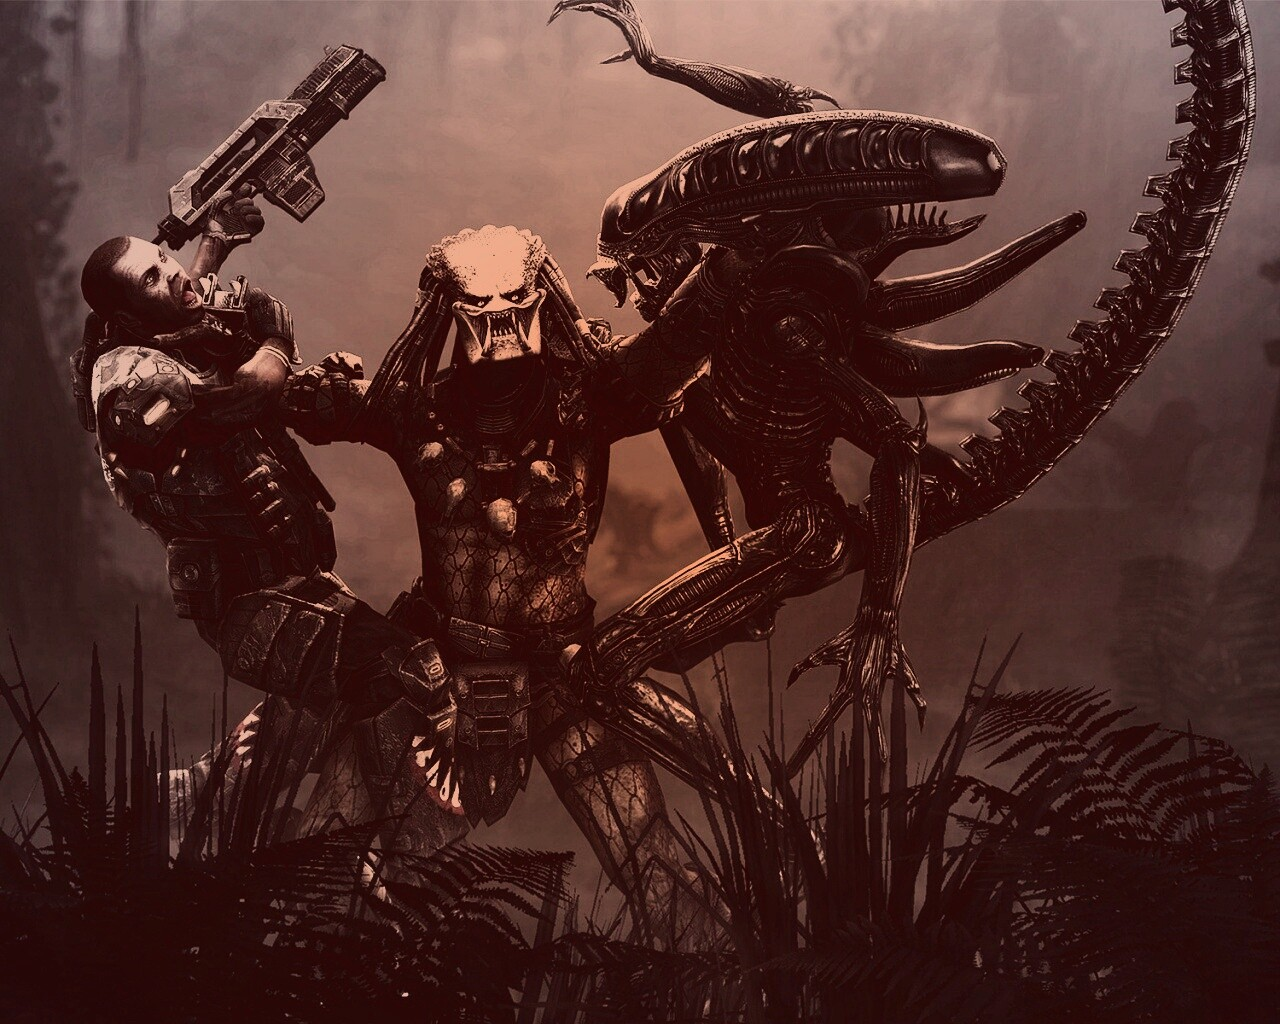 Cool pictures of aliens Arts Entertainment eHow